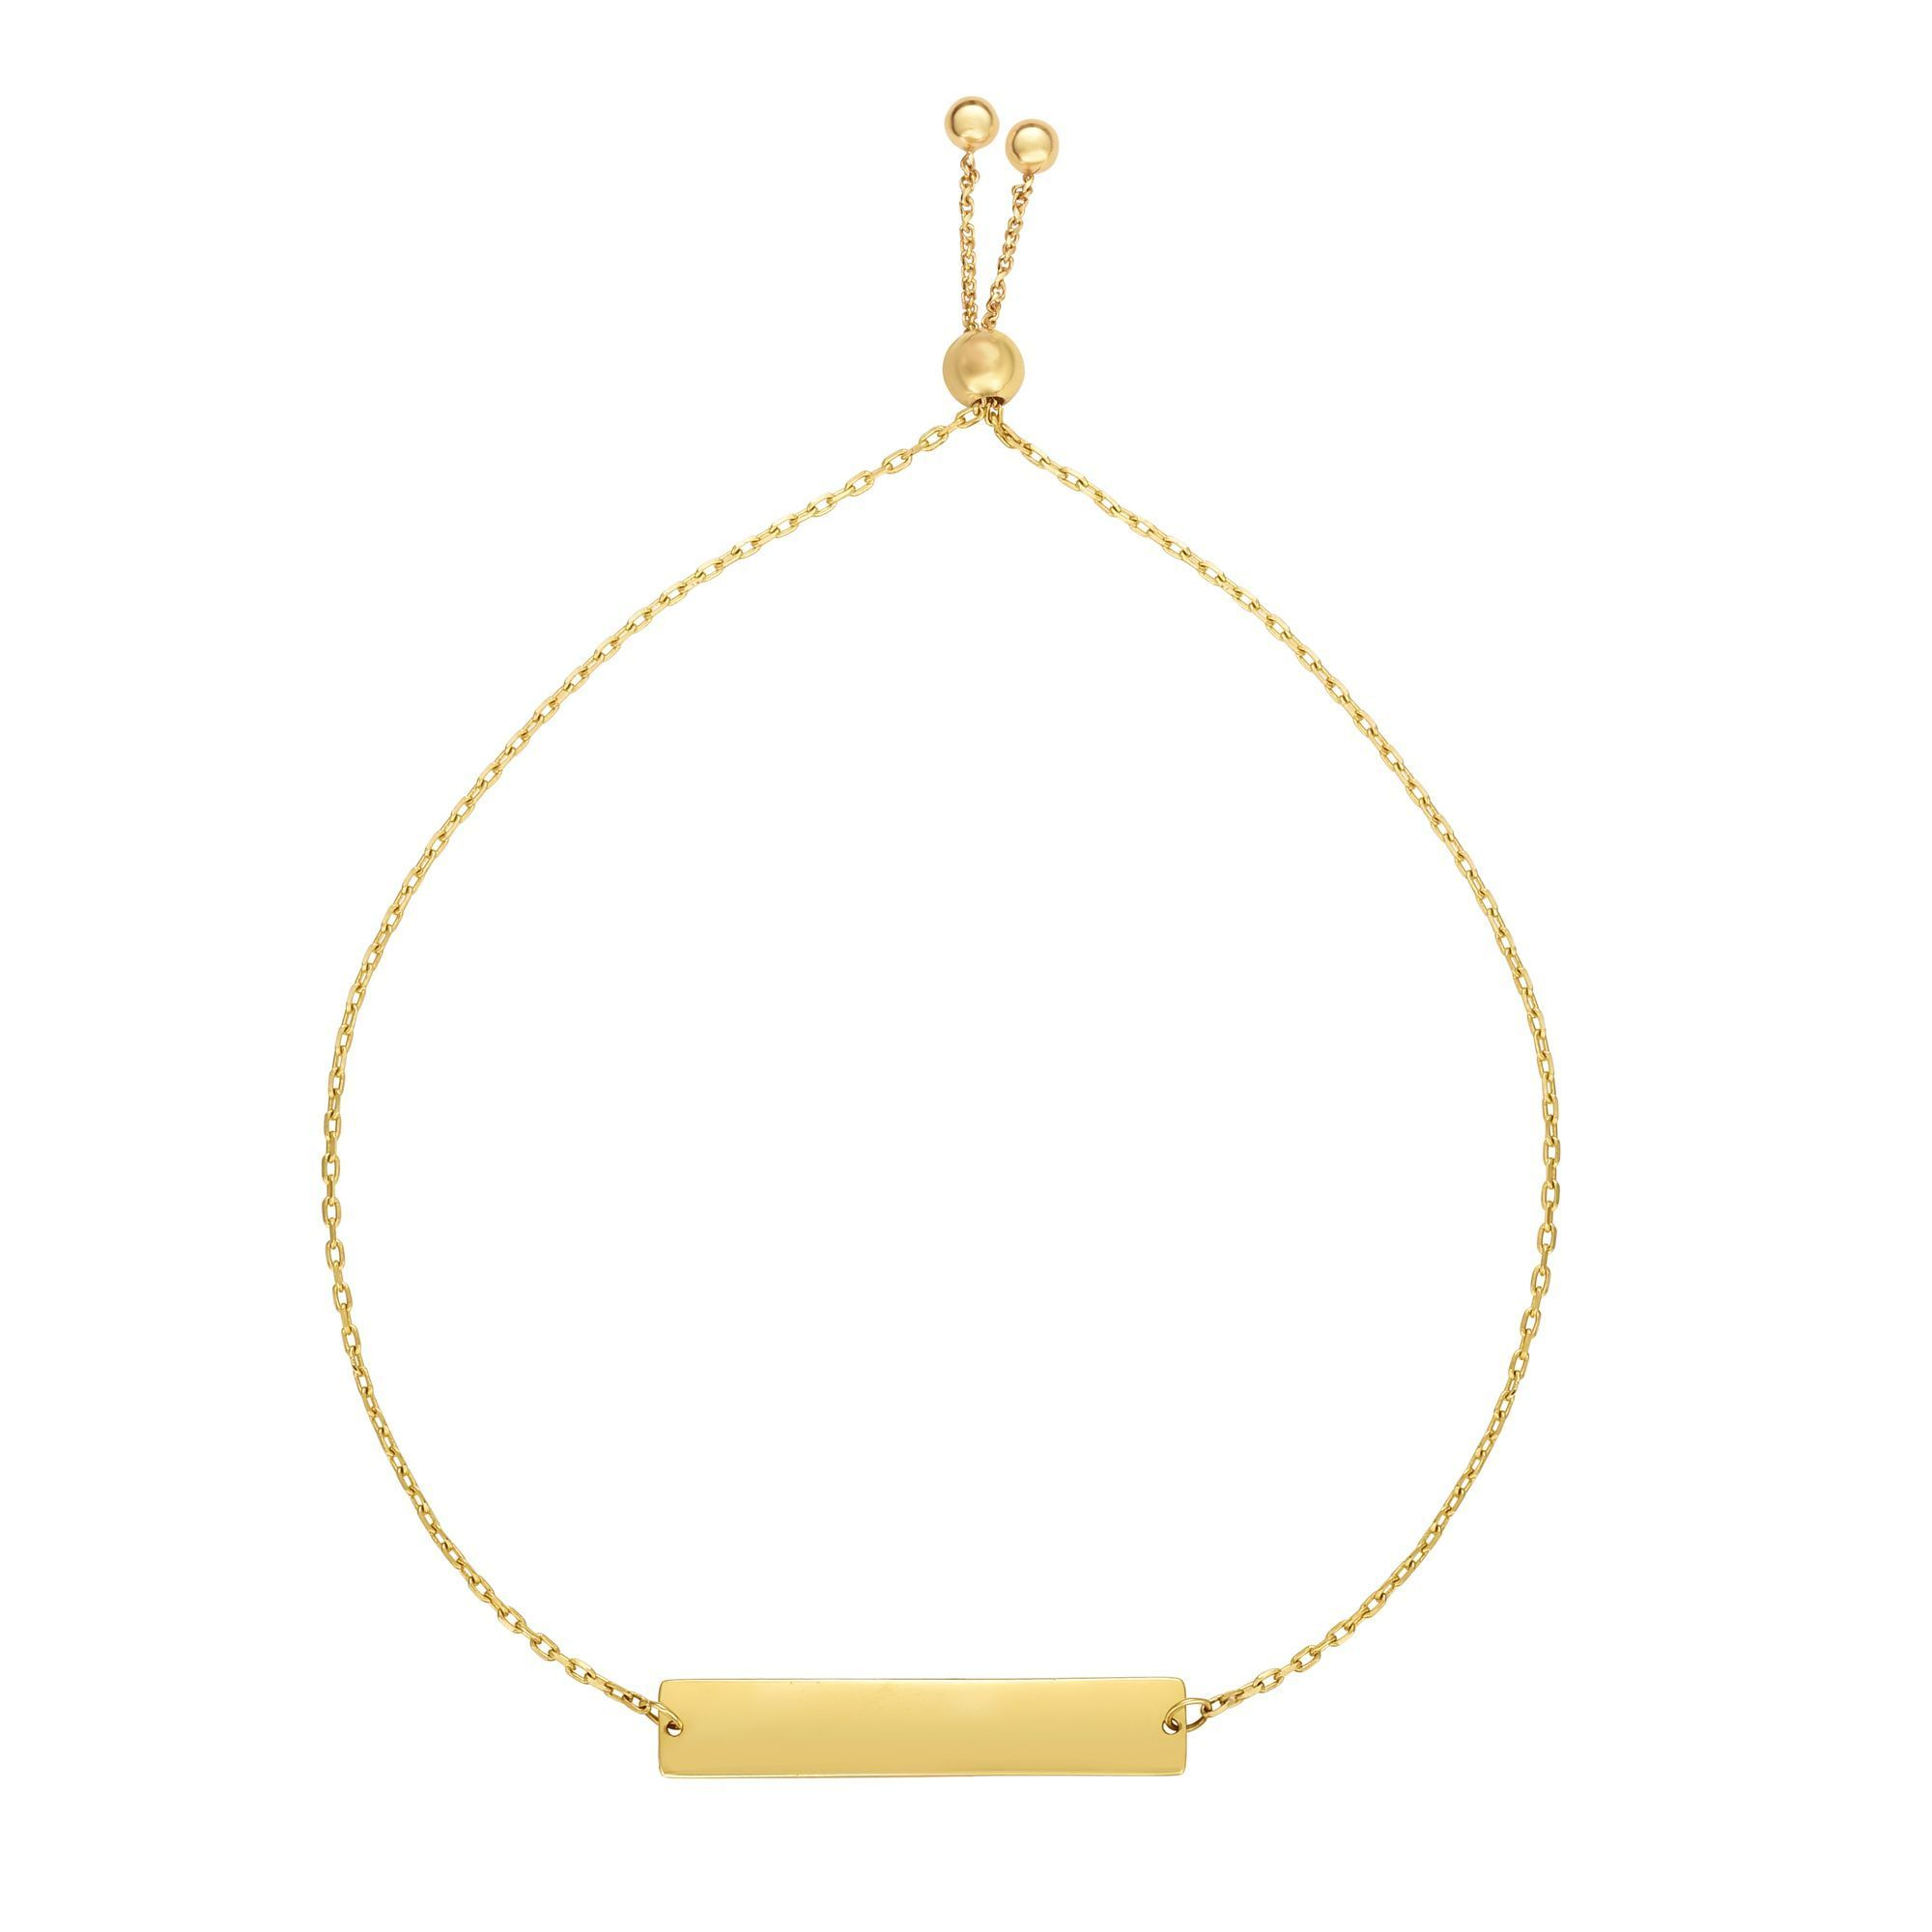 14k Yellow Gold Adjustable Personalized Bar Charm Bolo Bracelet, 9.25  Crafted in 14K yellow gold, our Bolo friendship line of bracelets are stylish easy to wear and a one of a kind collection. Meticulously executed in high quality finish 14K gold, these iconic bracelets are easily adjusted to fit any wrist. Each unique style of our Friendship collection looks beautiful worn as one piece alone or stacked with multiple styles for a layered and modern look. This bar bracelet weight is at 1.7 grams and has a high polished finsh. bracelet can be engraved. Please contact us with your request.